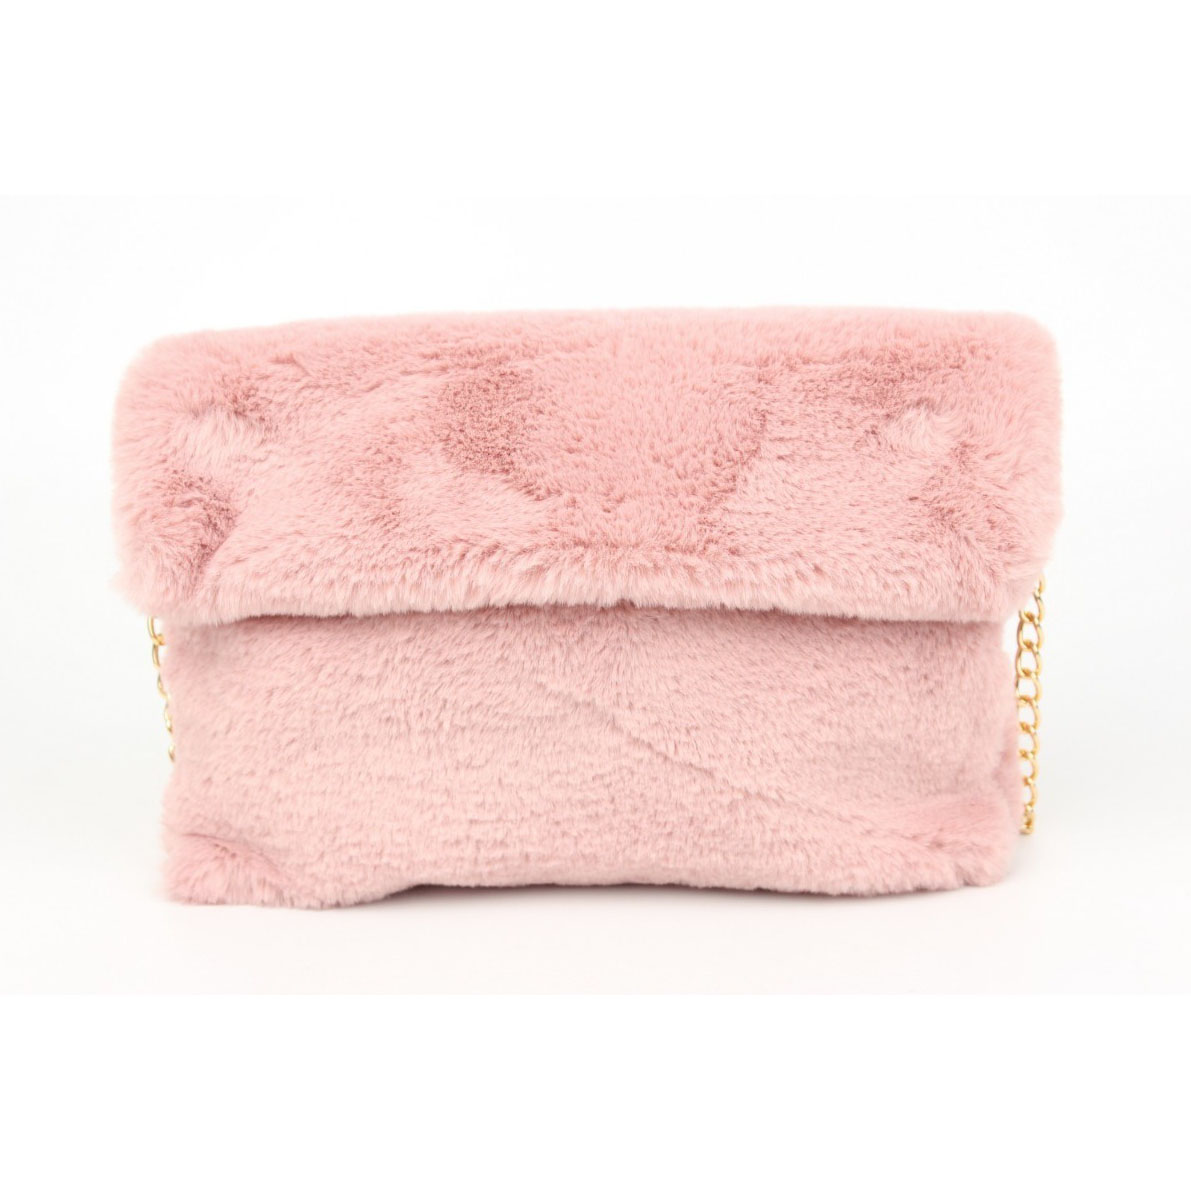 7be97b4fe Cartera Clutch Sobre En Piel Sintética Ana – Miscellaneous by Caff